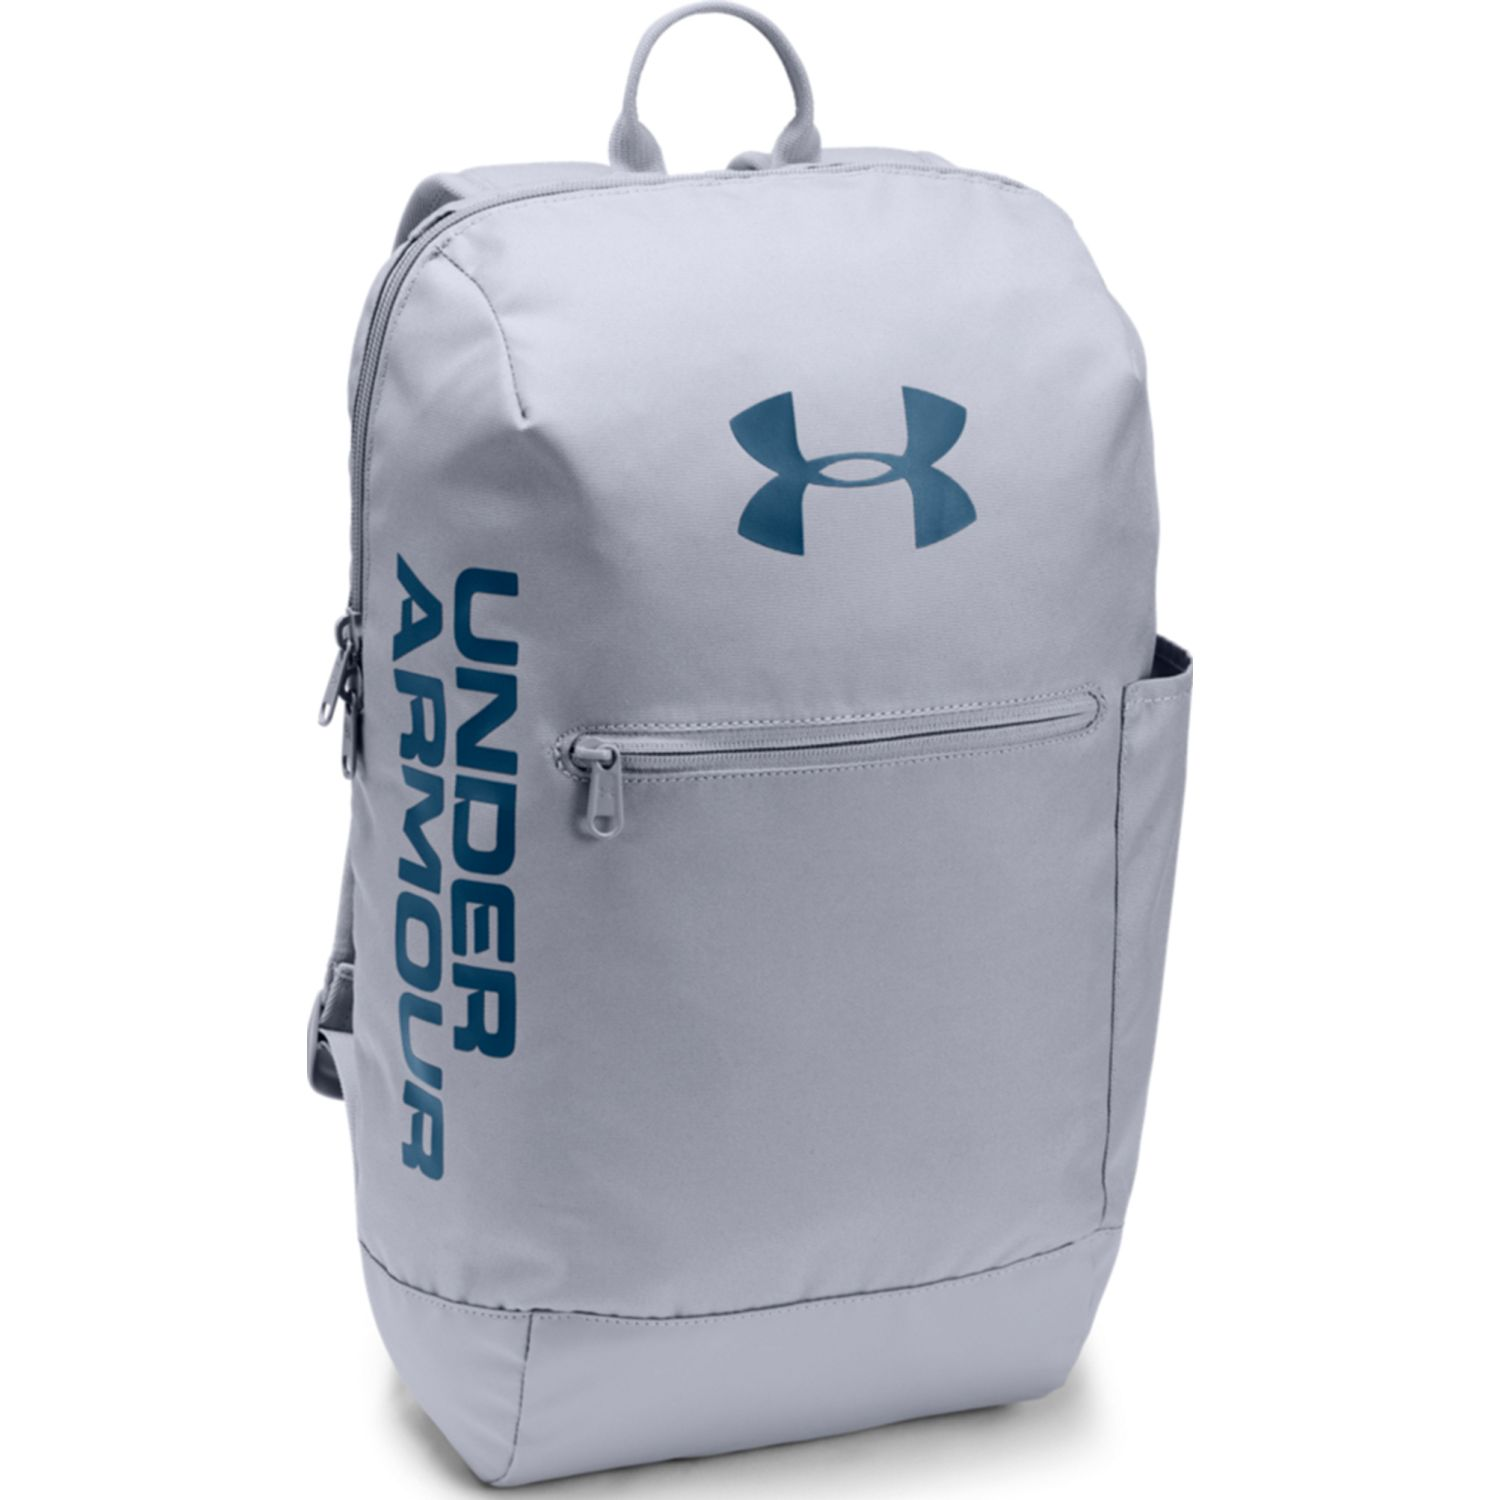 Under Armour ua patterson backpack Gris Mochilas Multipropósitos